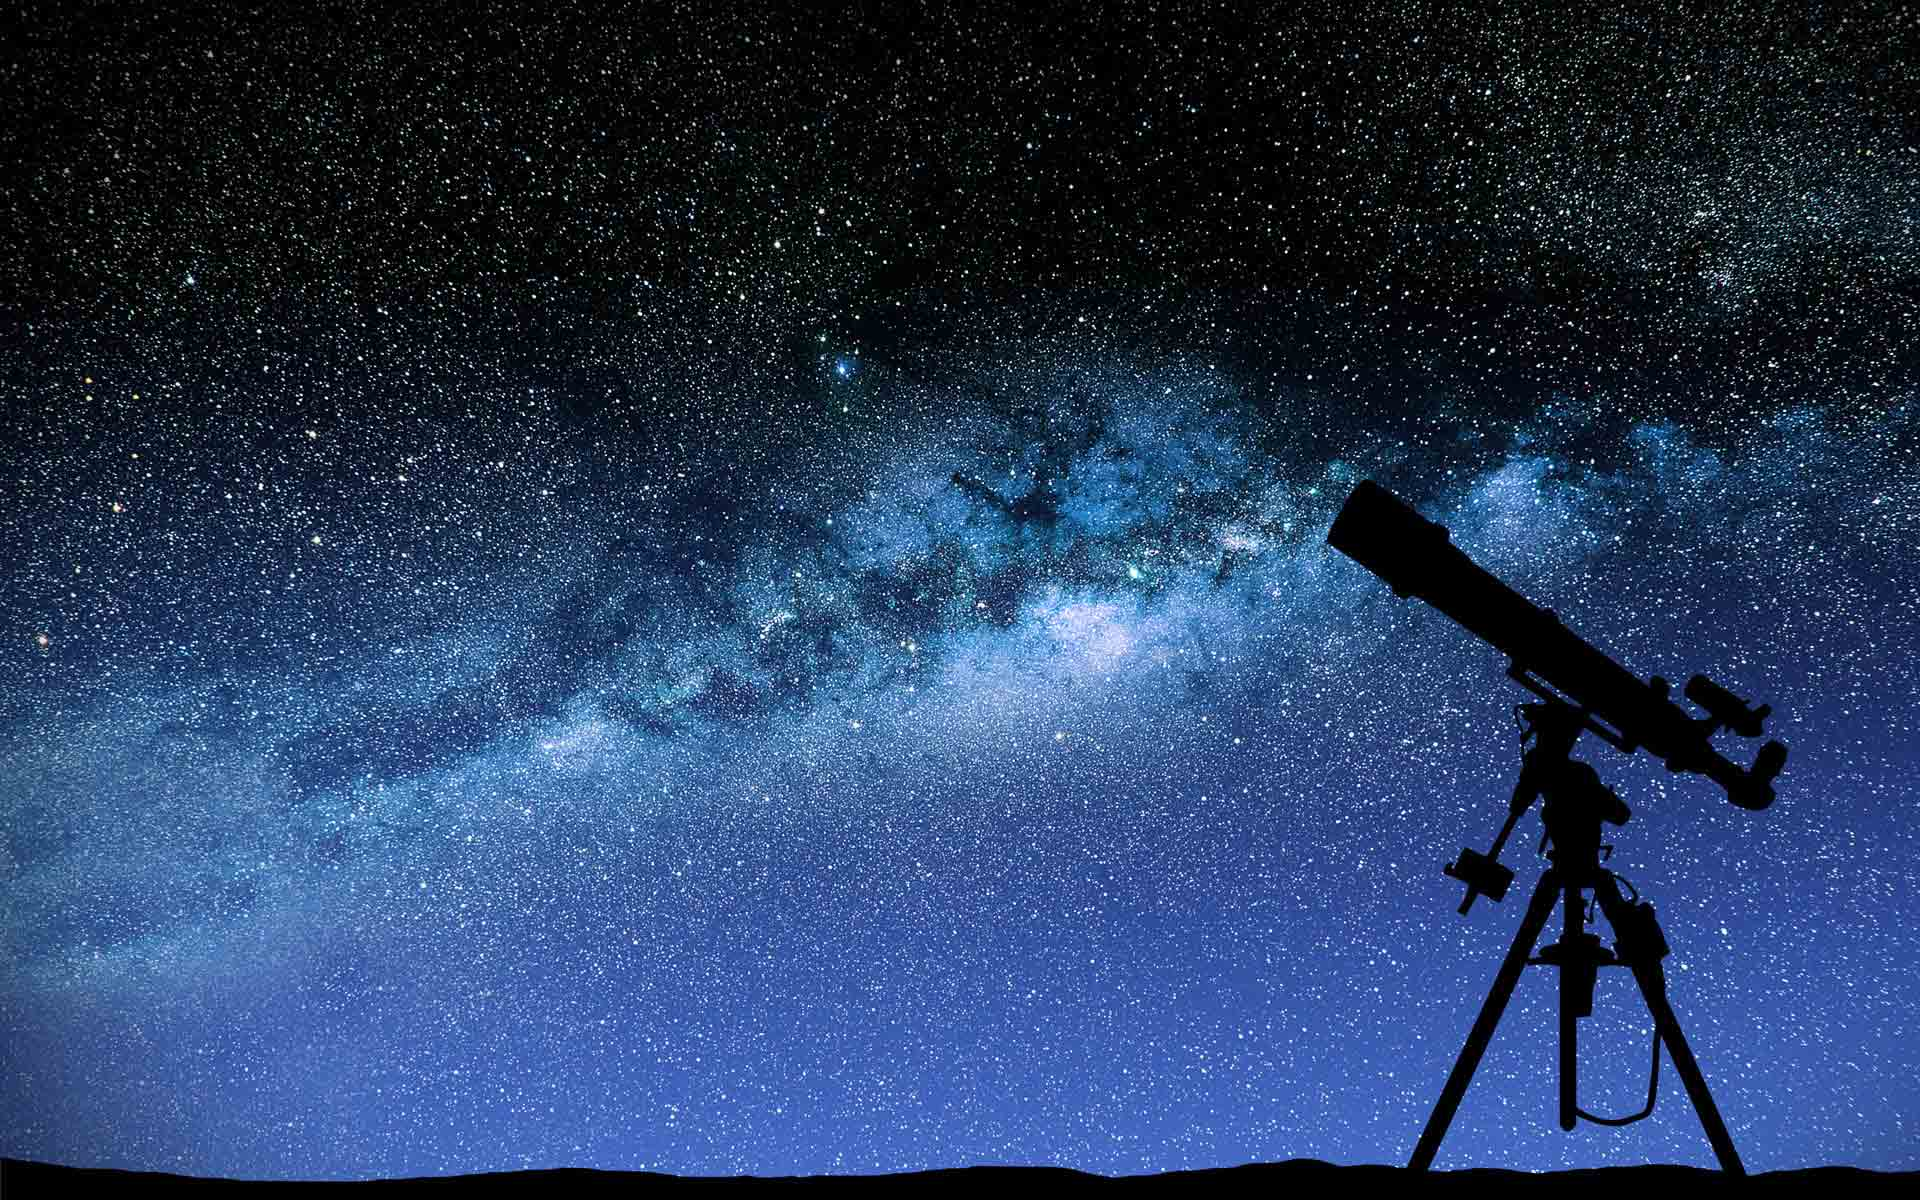 There is a telescope in front of the night sky filled with stars.